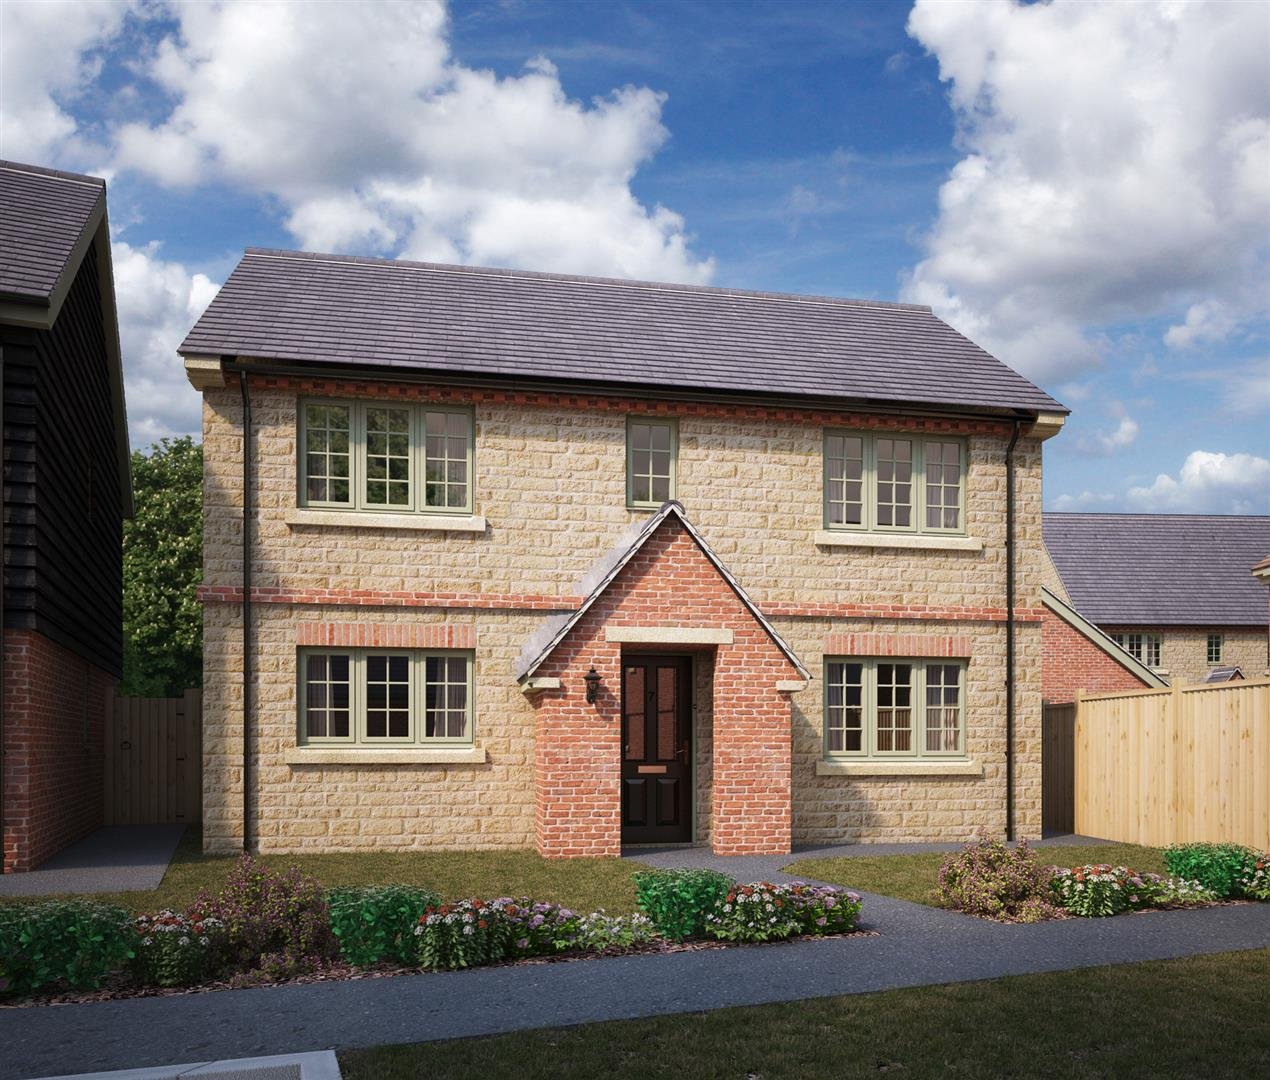 3 Bedrooms Detached House for sale in Sand Pit Road, Calne